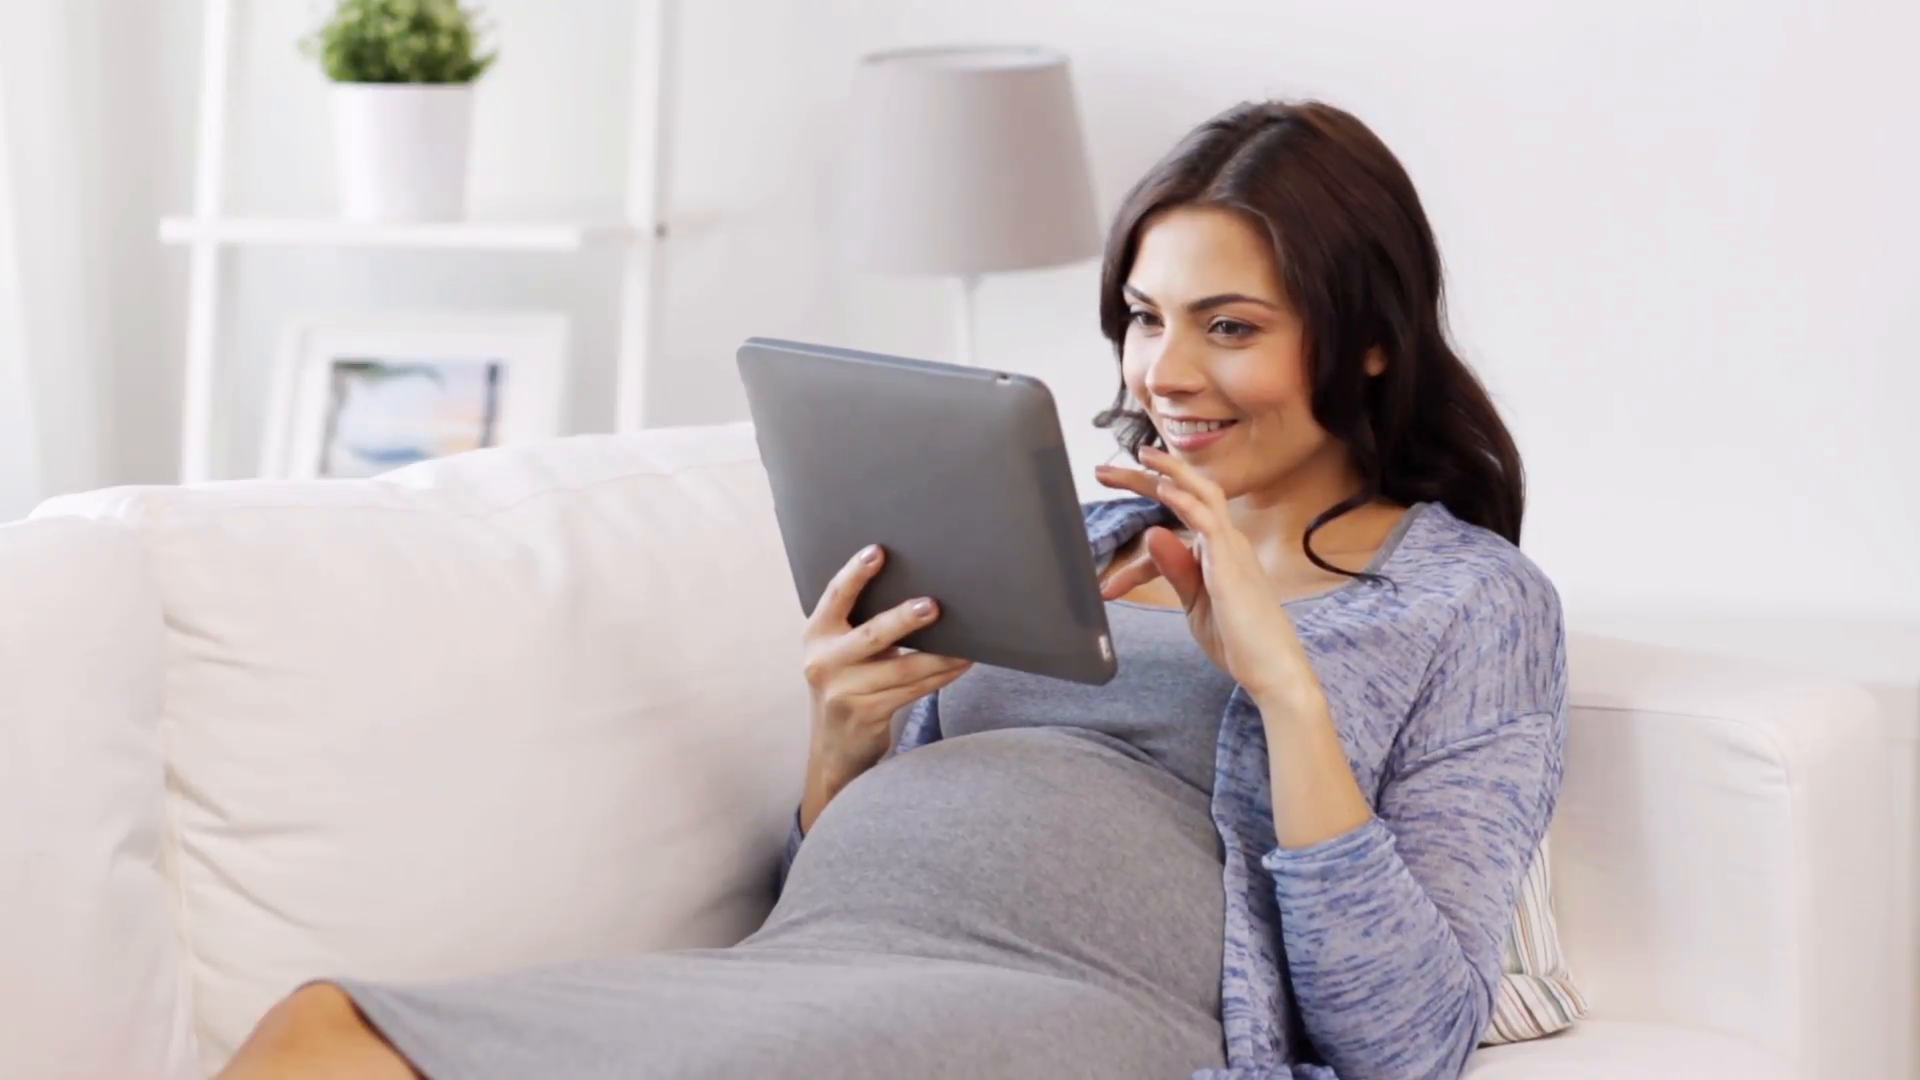 pregnancy-motherhood-technology-people-and-expectation-concept-happy-pregnant-woman-with-tablet-pc-computer-at-home_eszxtl5srg__F0000